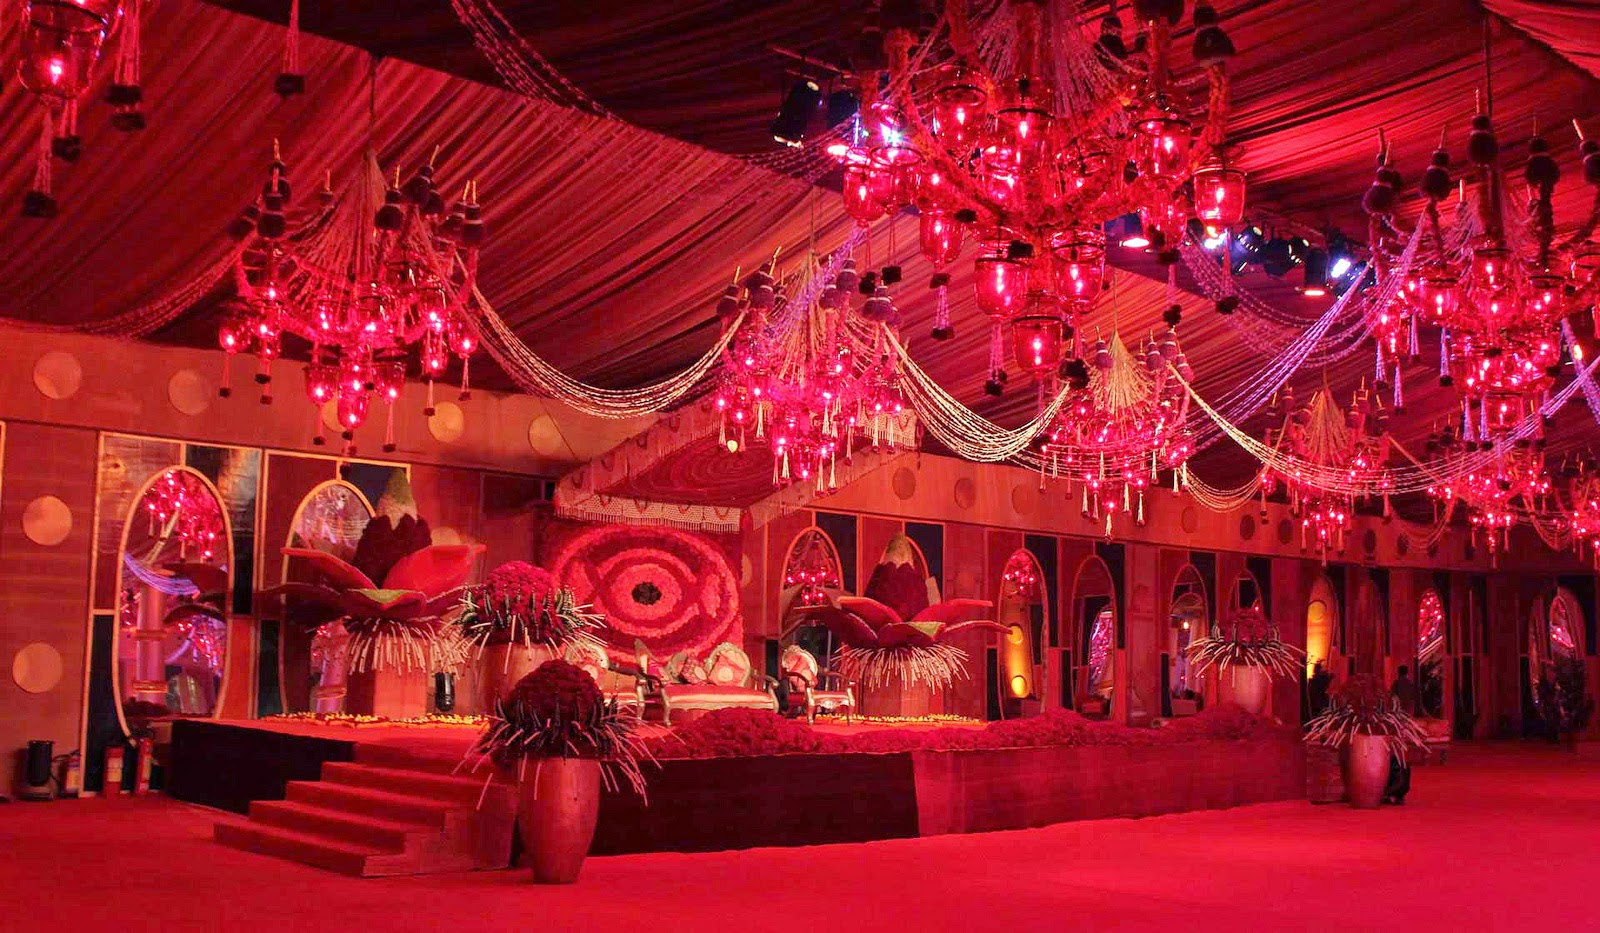 Royal Wedding Decoration How To choose Best Indian Wedding Planner